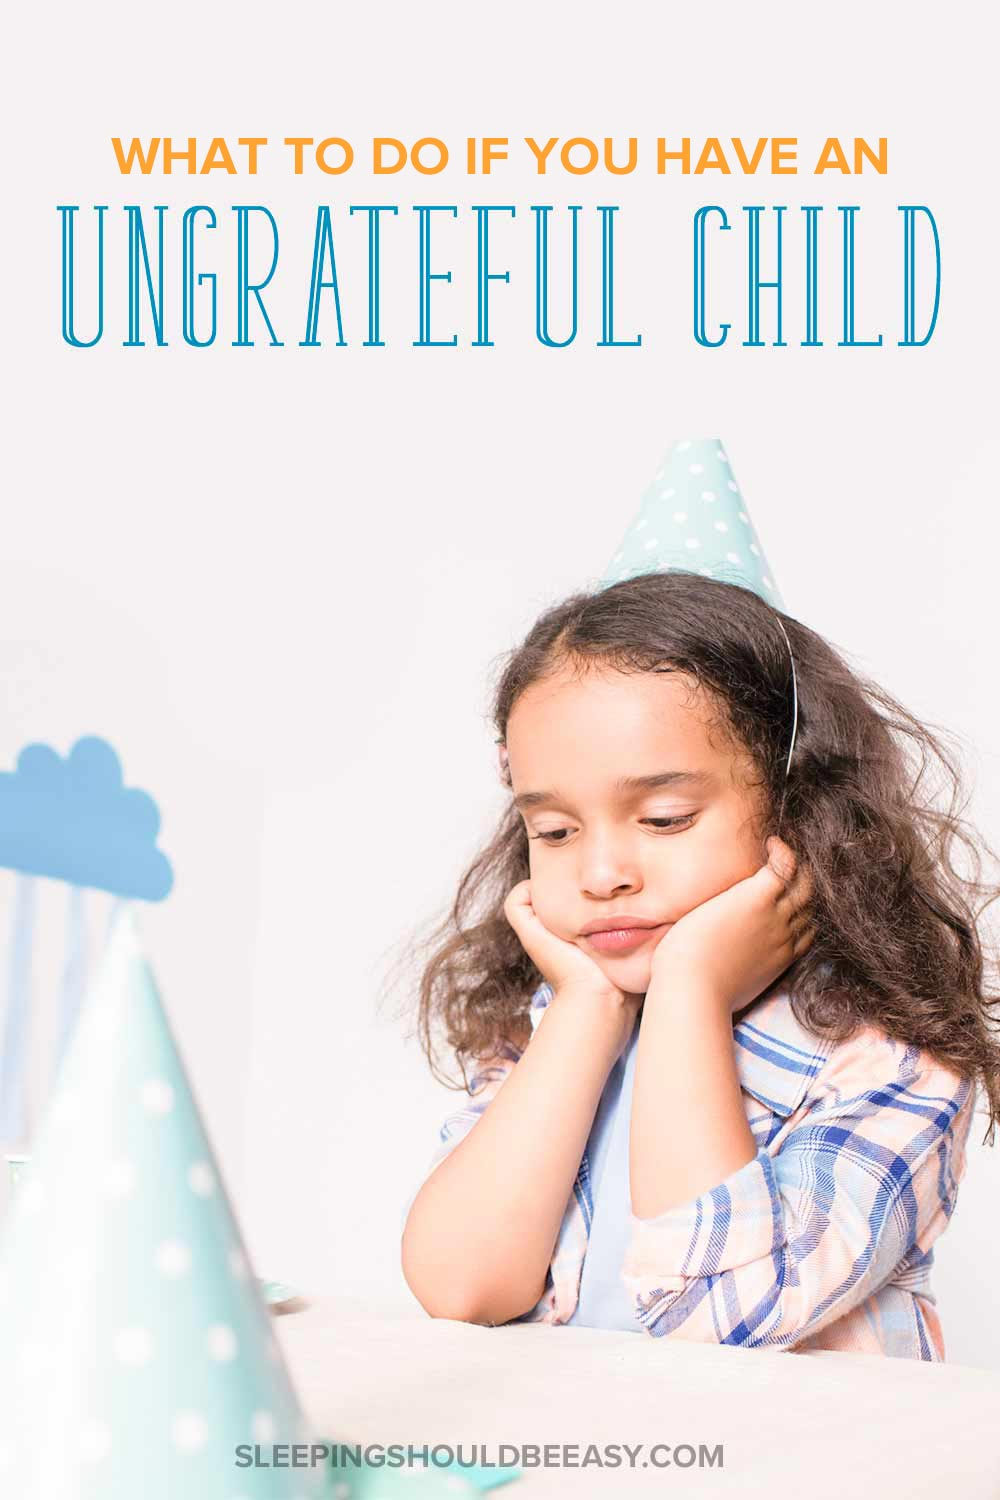 Sad, ungrateful child with a birthday hat